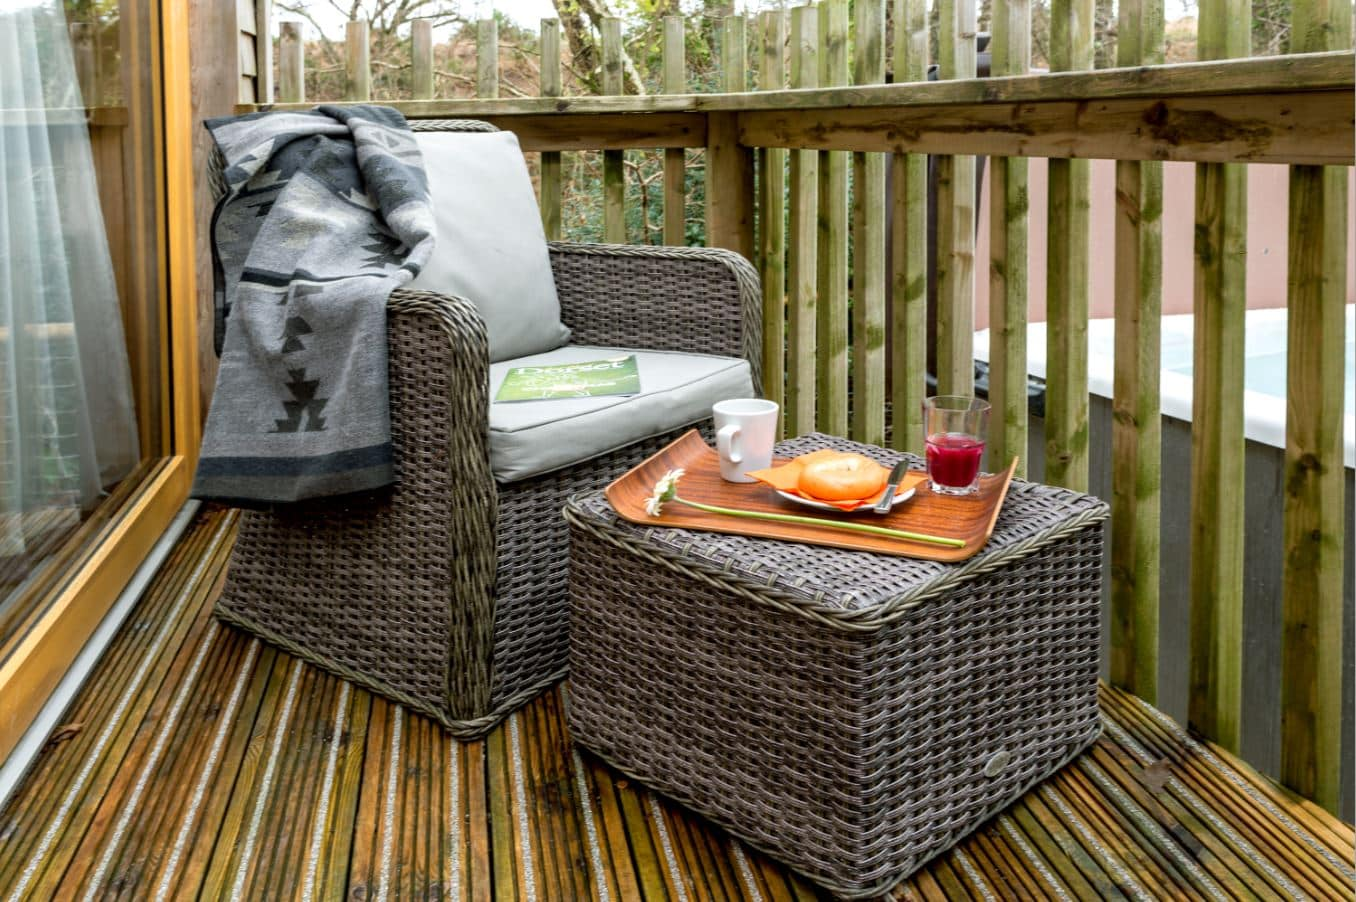 Fully furnished decked terrace complete with your own private bubbling hot tub